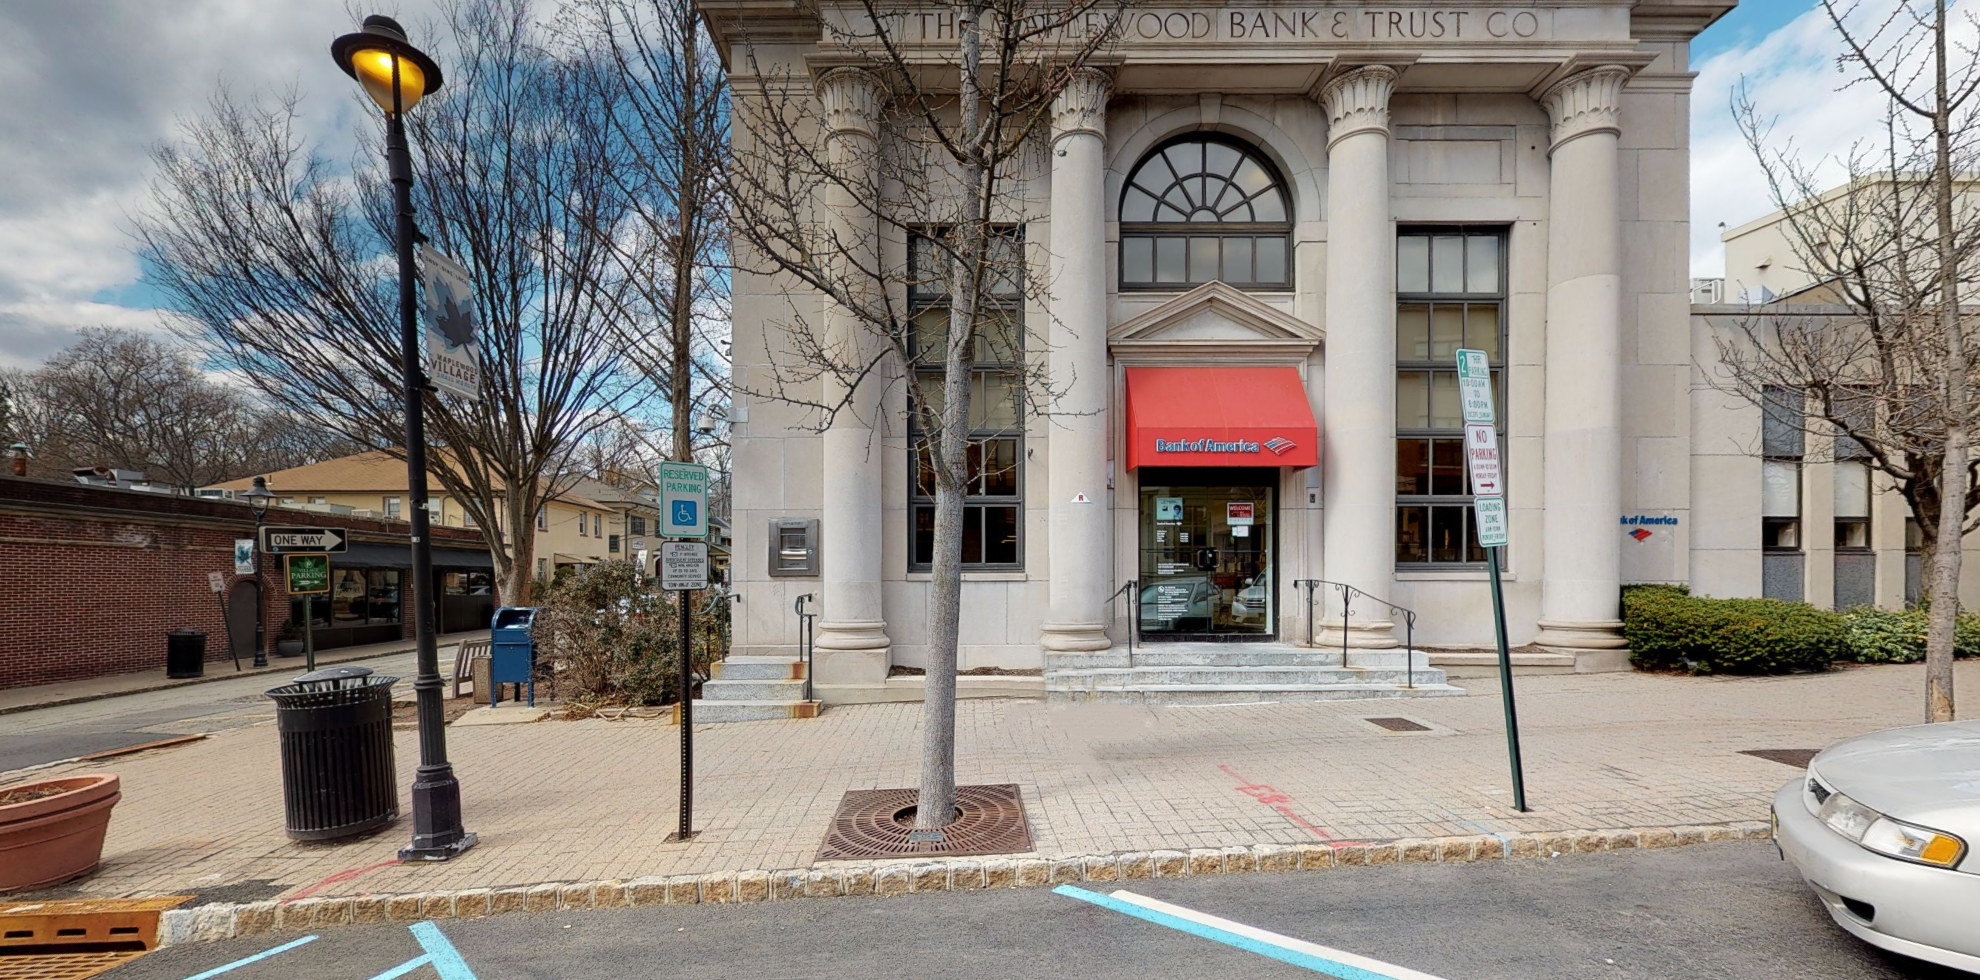 Bank of America financial center with drive-thru ATM | 161 Maplewood Ave, Maplewood, NJ 07040